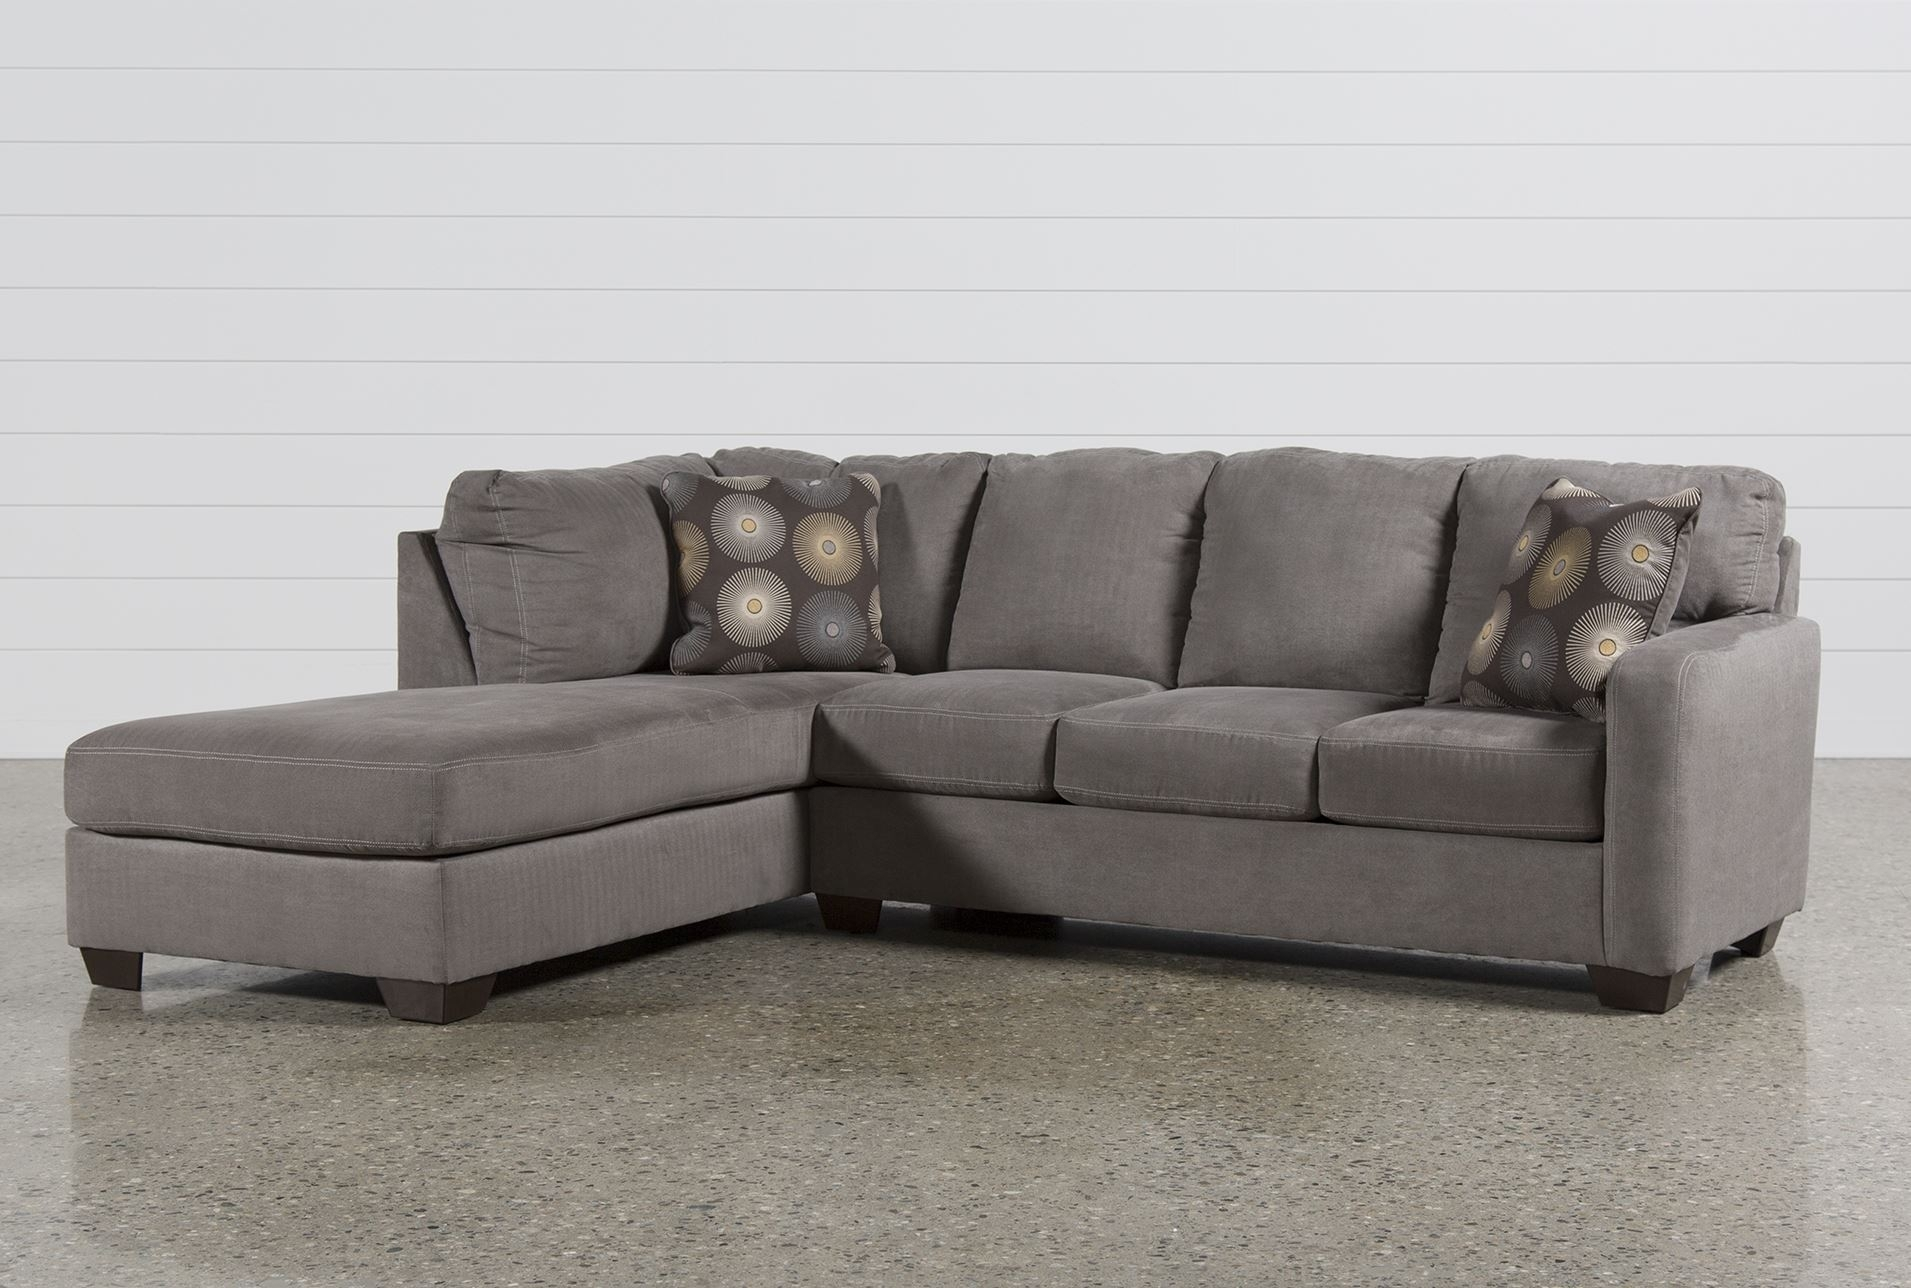 Laf Chaise Sectional Sofa | Baci Living Room Throughout Arrowmask 2 Piece Sectionals With Sleeper & Left Facing Chaise (Image 12 of 25)